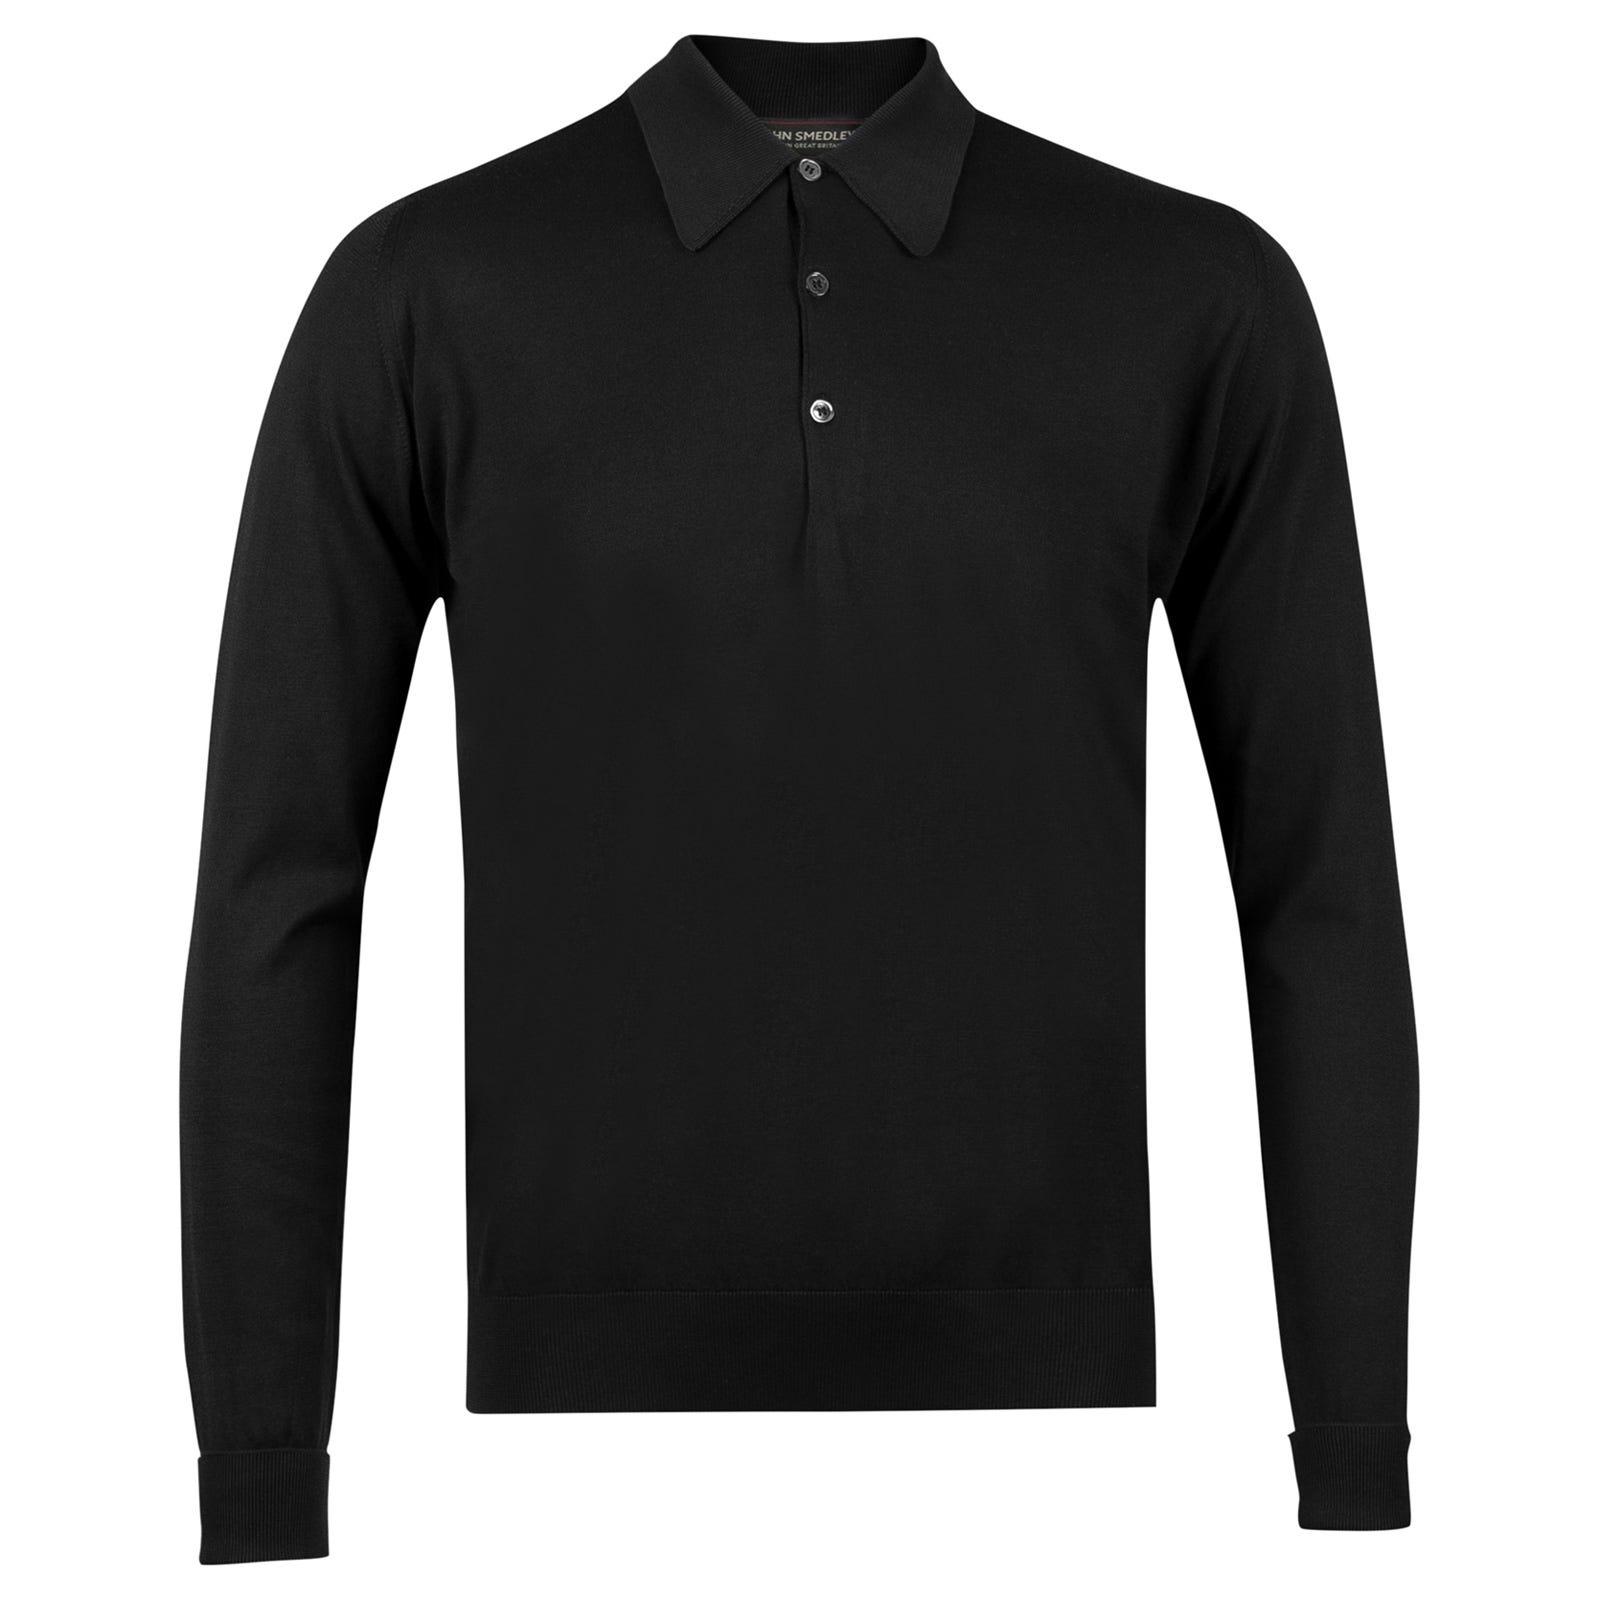 John Smedley finchley Sea Island Cotton Shirt in Black-L